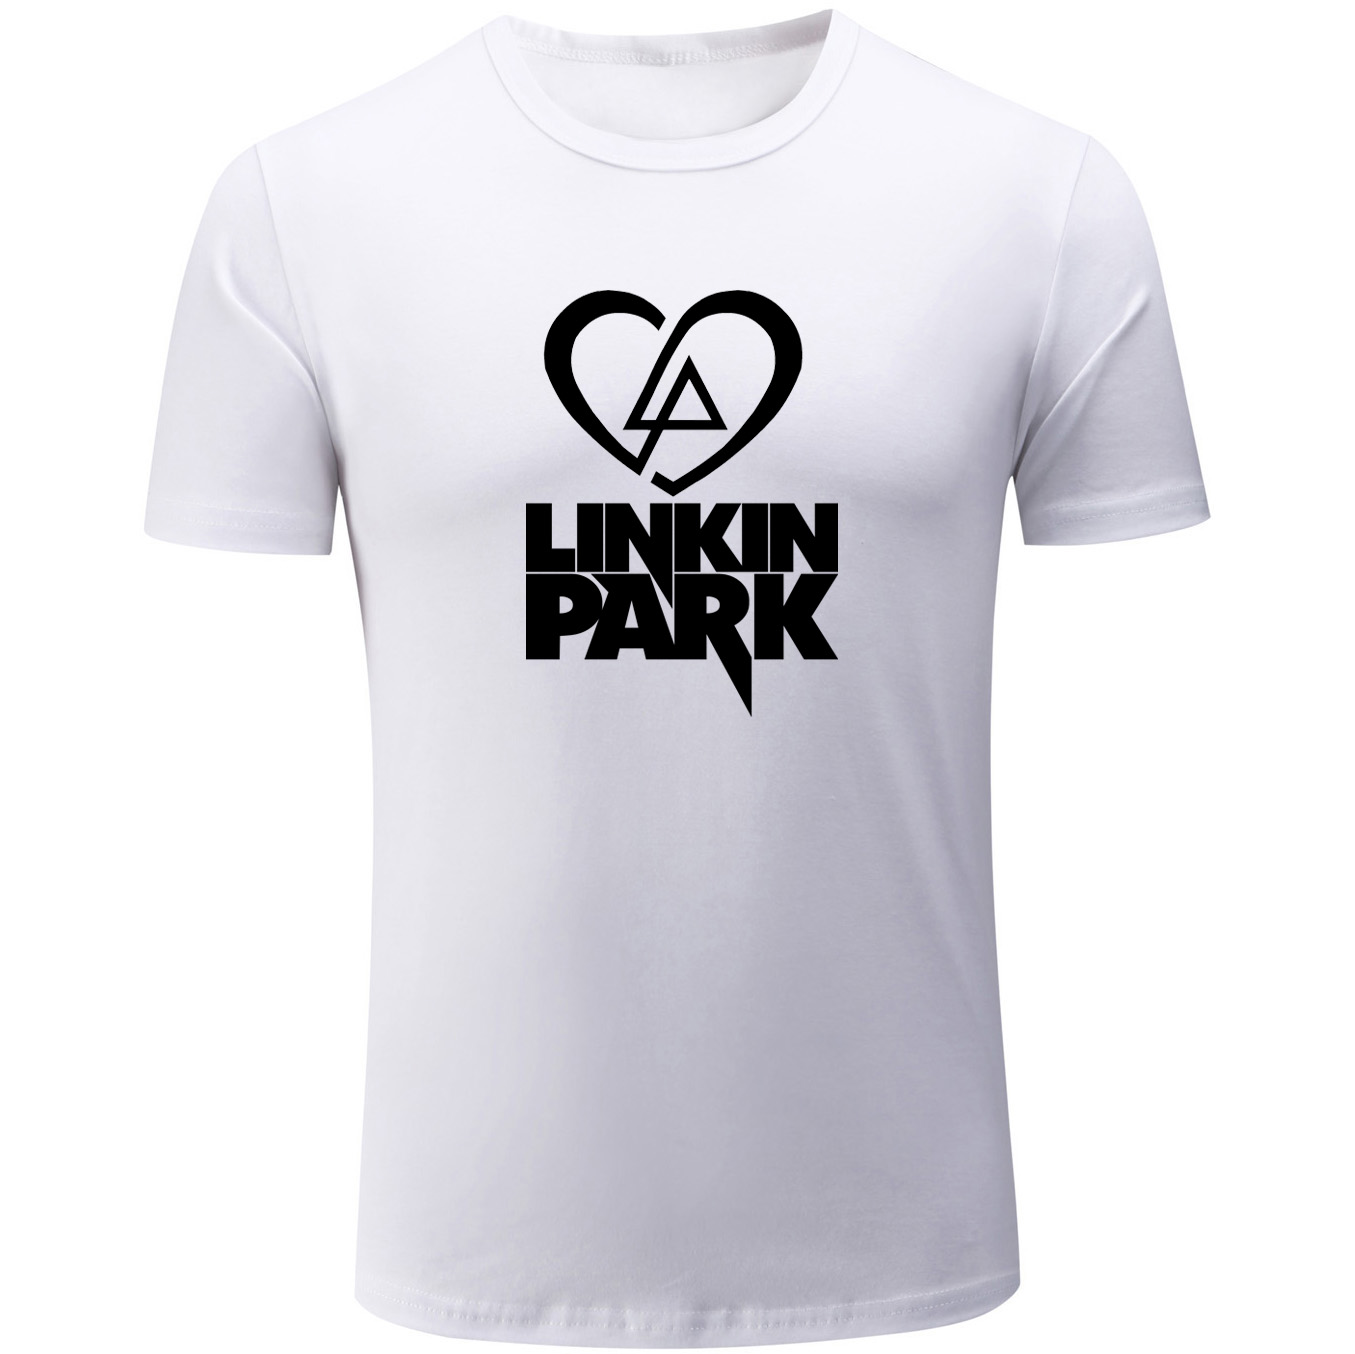 Us 9 87 48 Off New Linkin Park Symbol Fitness T Shirt Men Women Cool Rock T Shirt Short Sleeve Girls Boys Tshirts Hip Hop Tops Streetwear Tops In